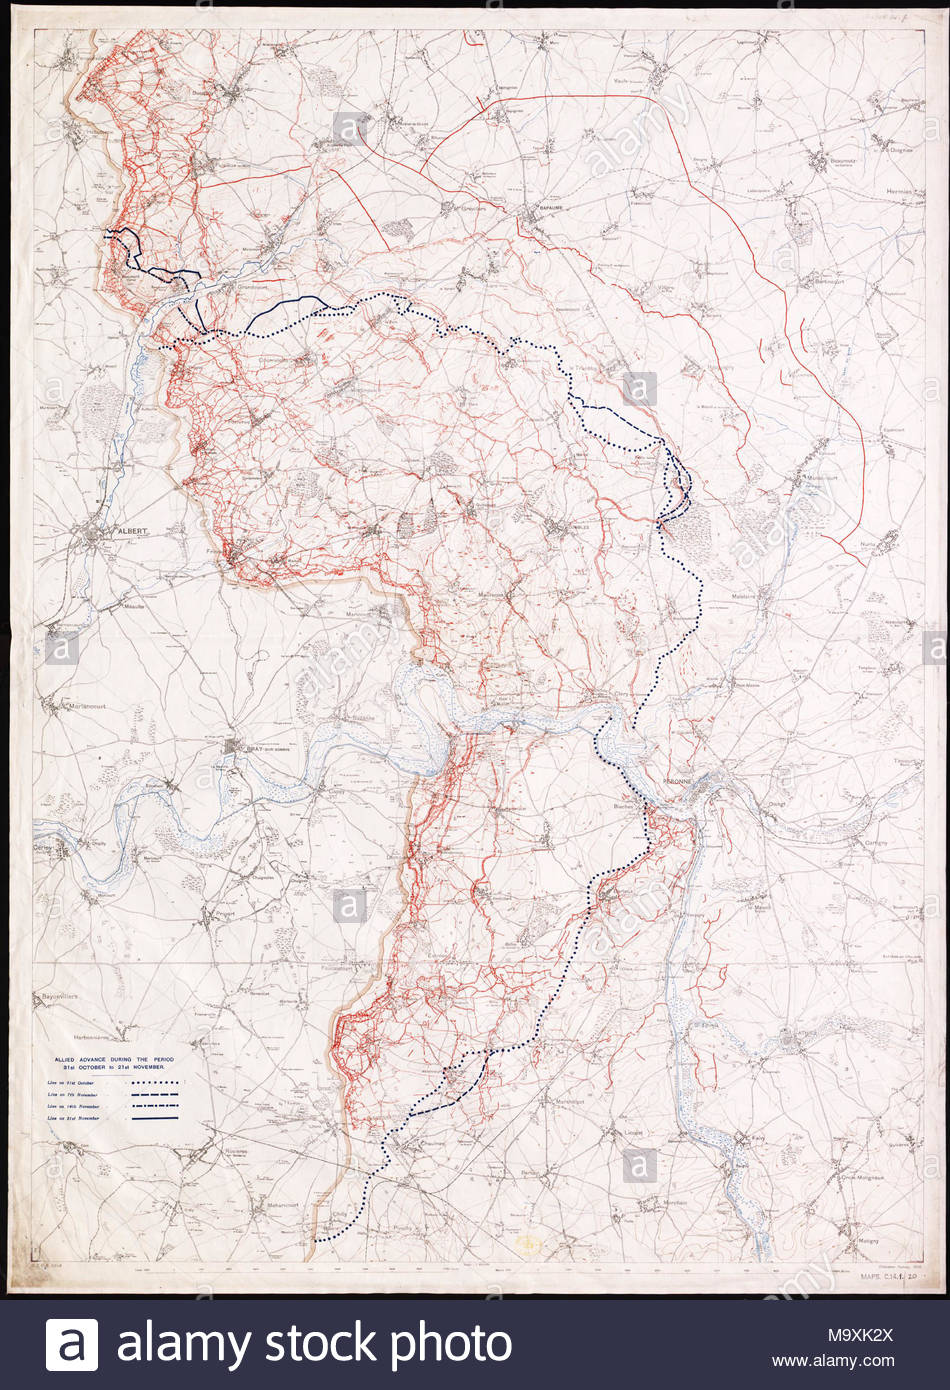 Scale 1:40 000.; Covers area in Picardy and Nord-Pas-de-Calais in ...